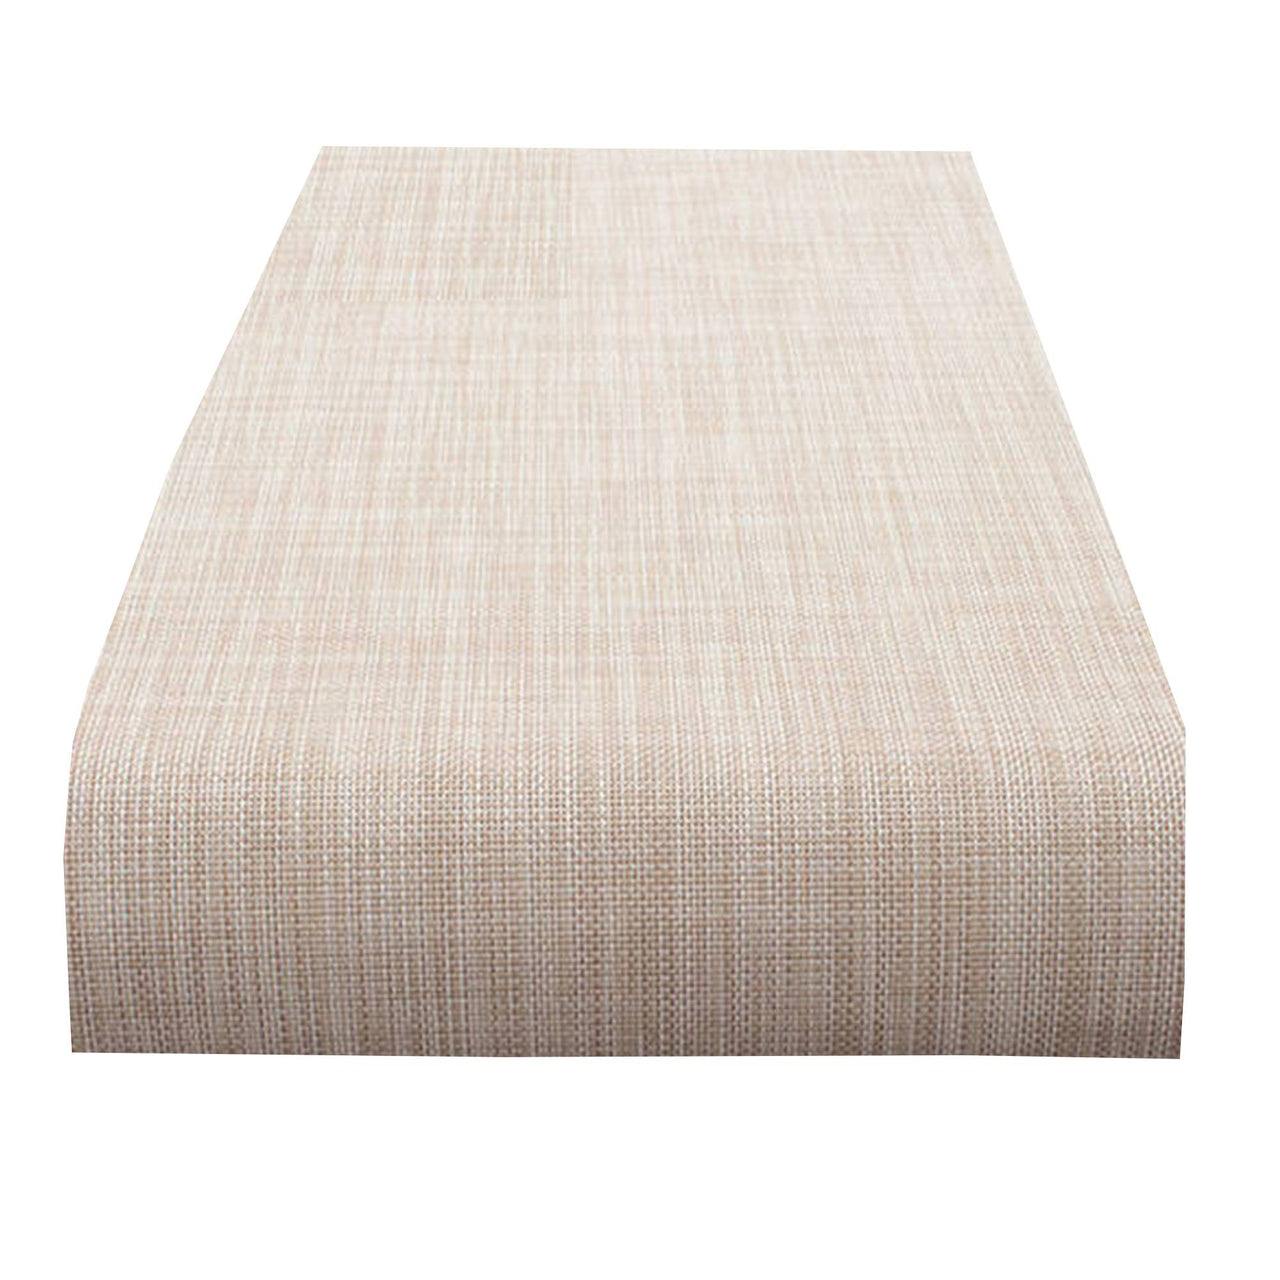 Mini Basketweave Table Runner: Parchment